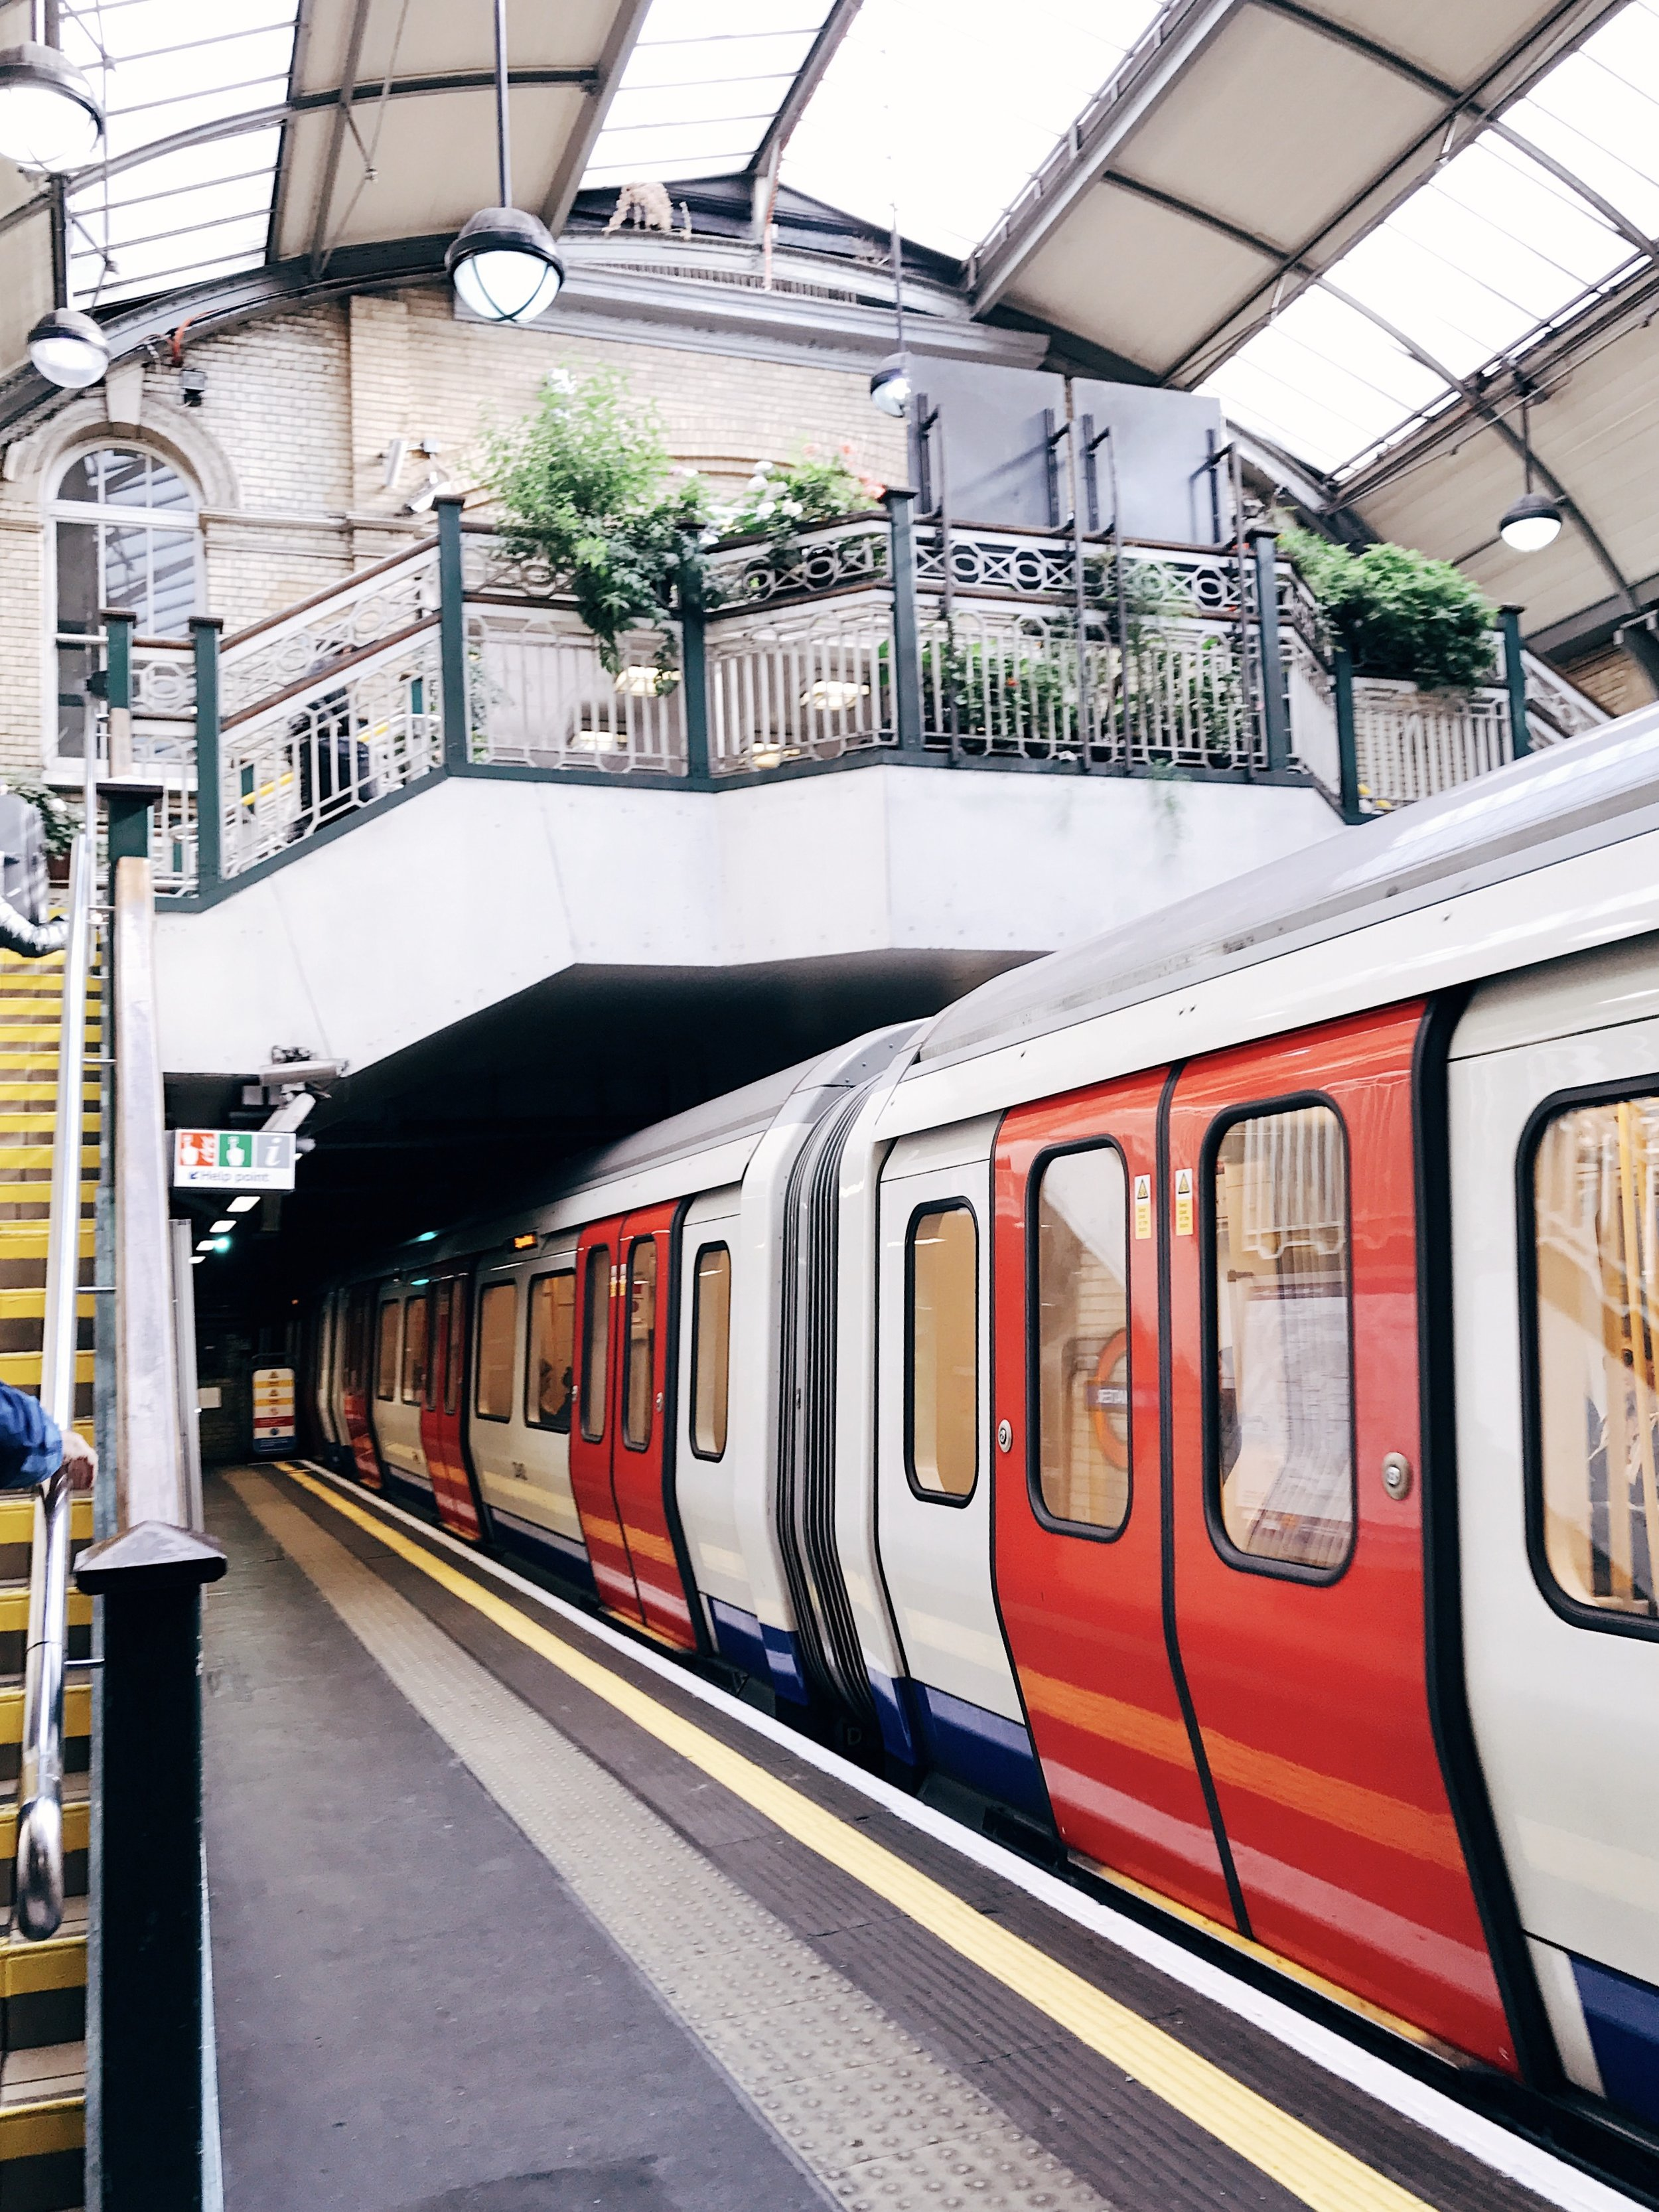 Image: Where to Travel in 2018 - London - UK